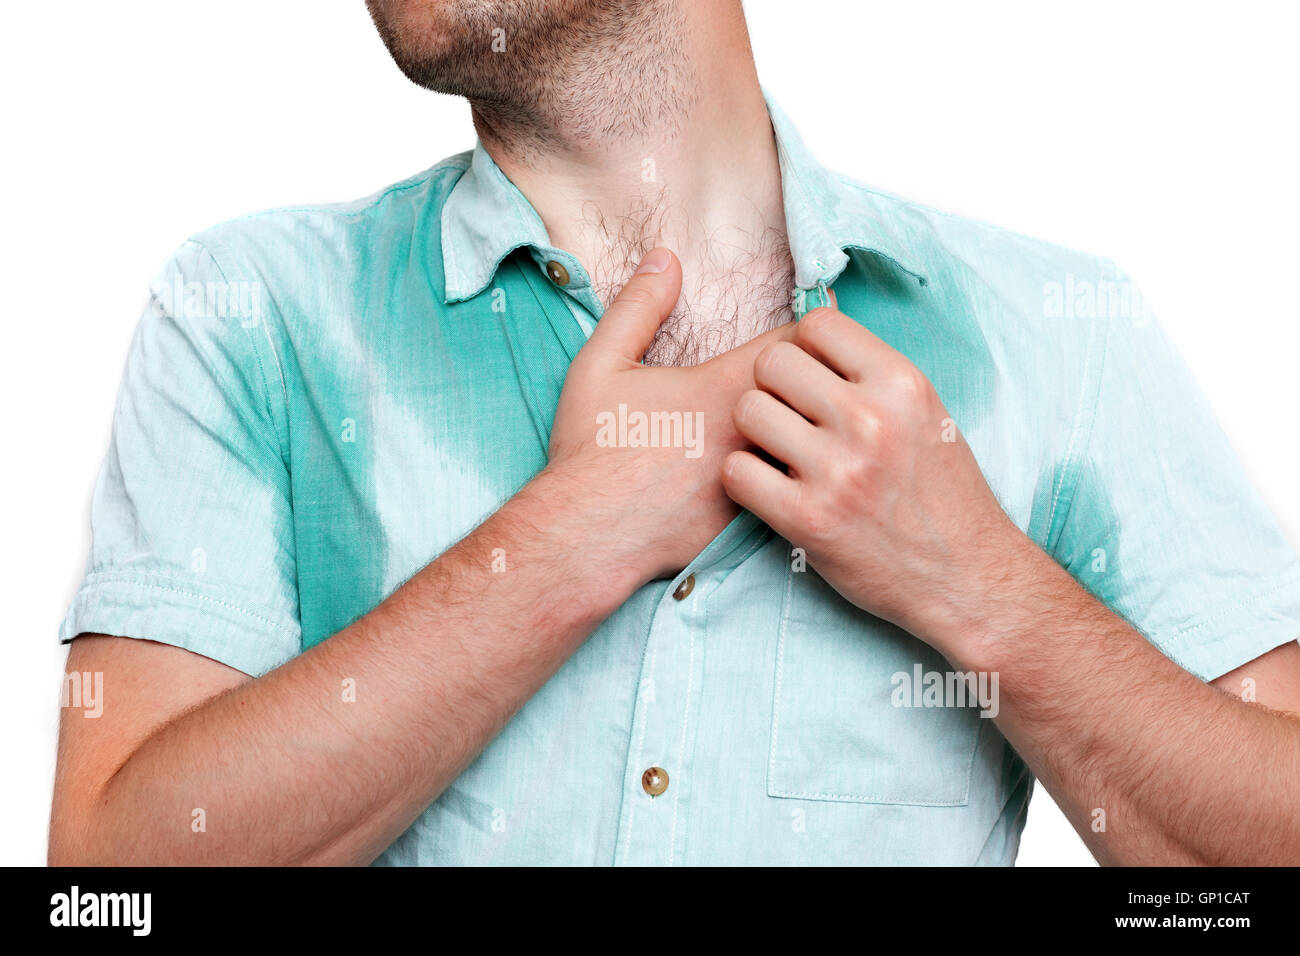 problem with sweating. Wet clothes from the heat - Stock Image